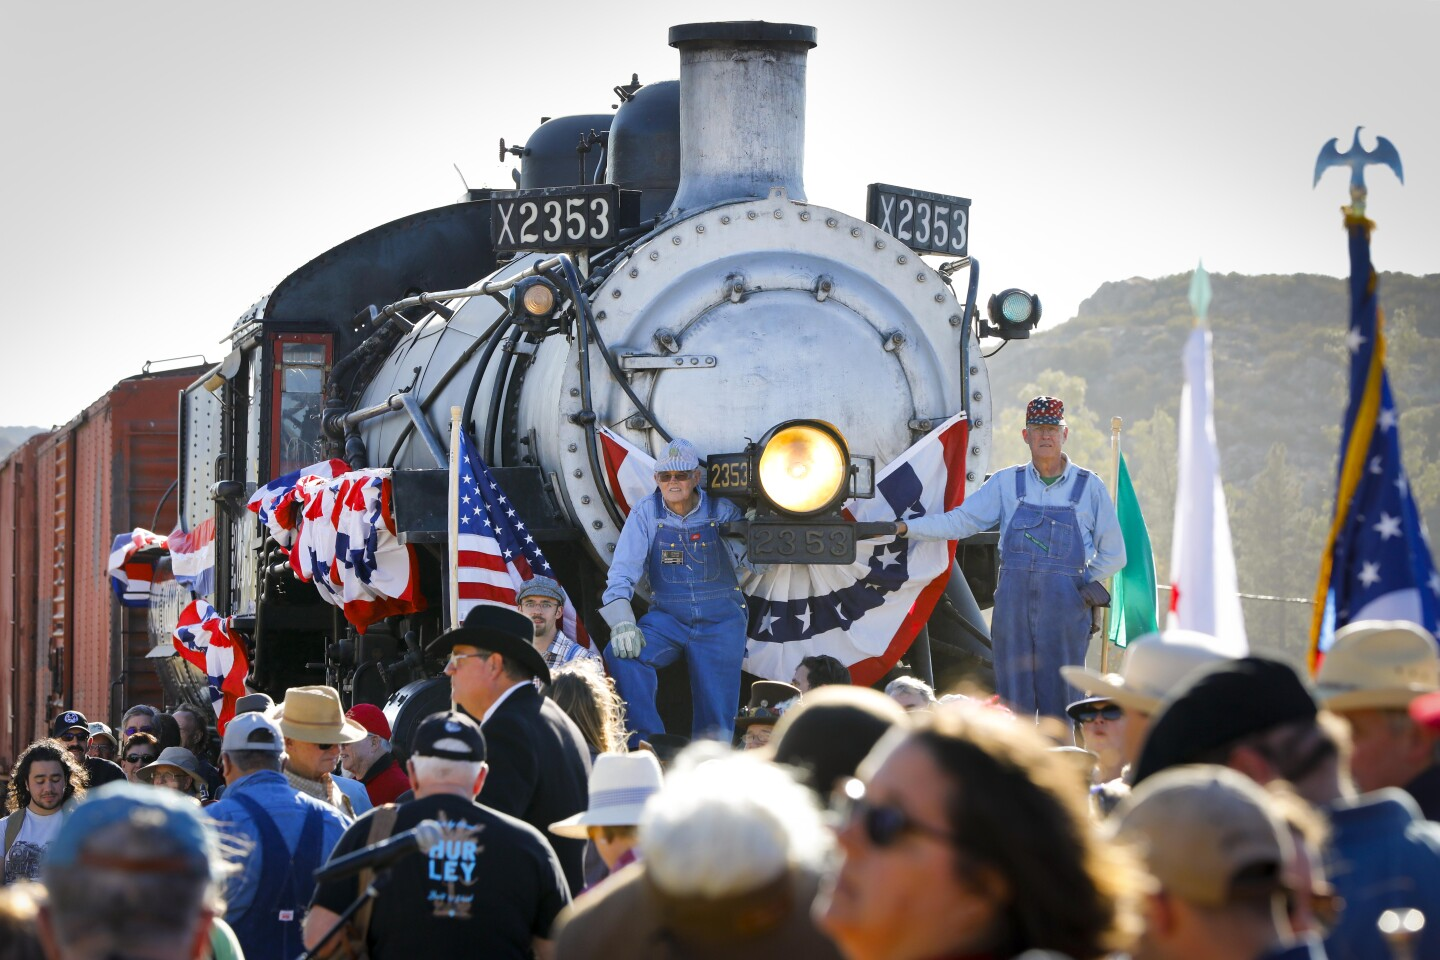 With a 1912 Baldwin steam locomotive in the background that once traveled on the railroad tracks in Campo, those who attended the SD&A Centennial Gold Spike Day at the Pacific Southwest Railway Museum, pose for a group photo, celebrating the 100th anniversary of the completion of the San Diego & Arizona Railway.